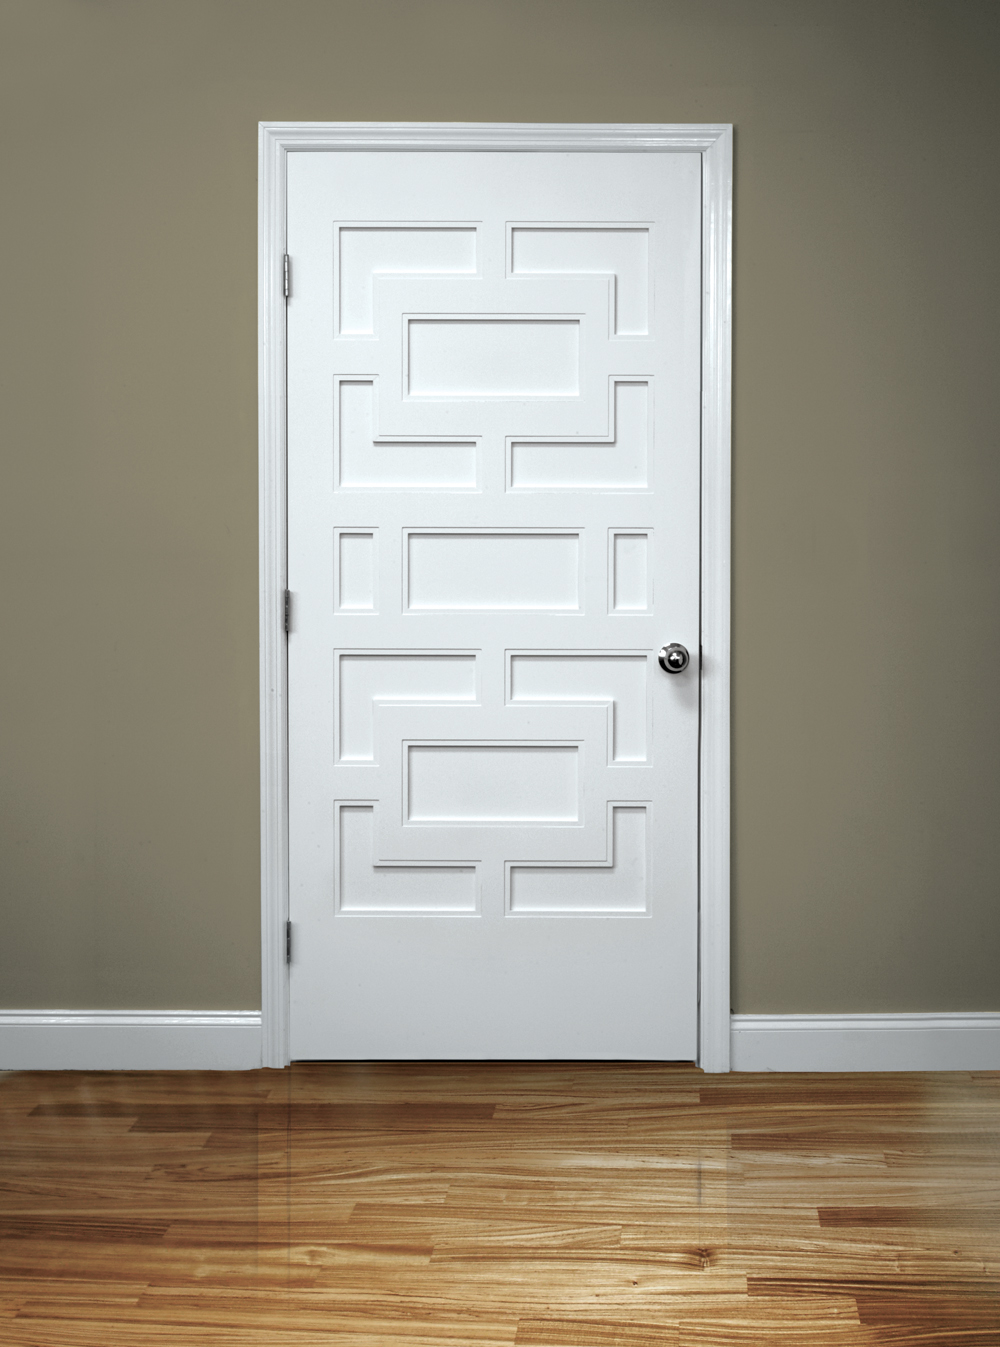 26 inch interior door home depot is a quality and budget door model adorning any interior design